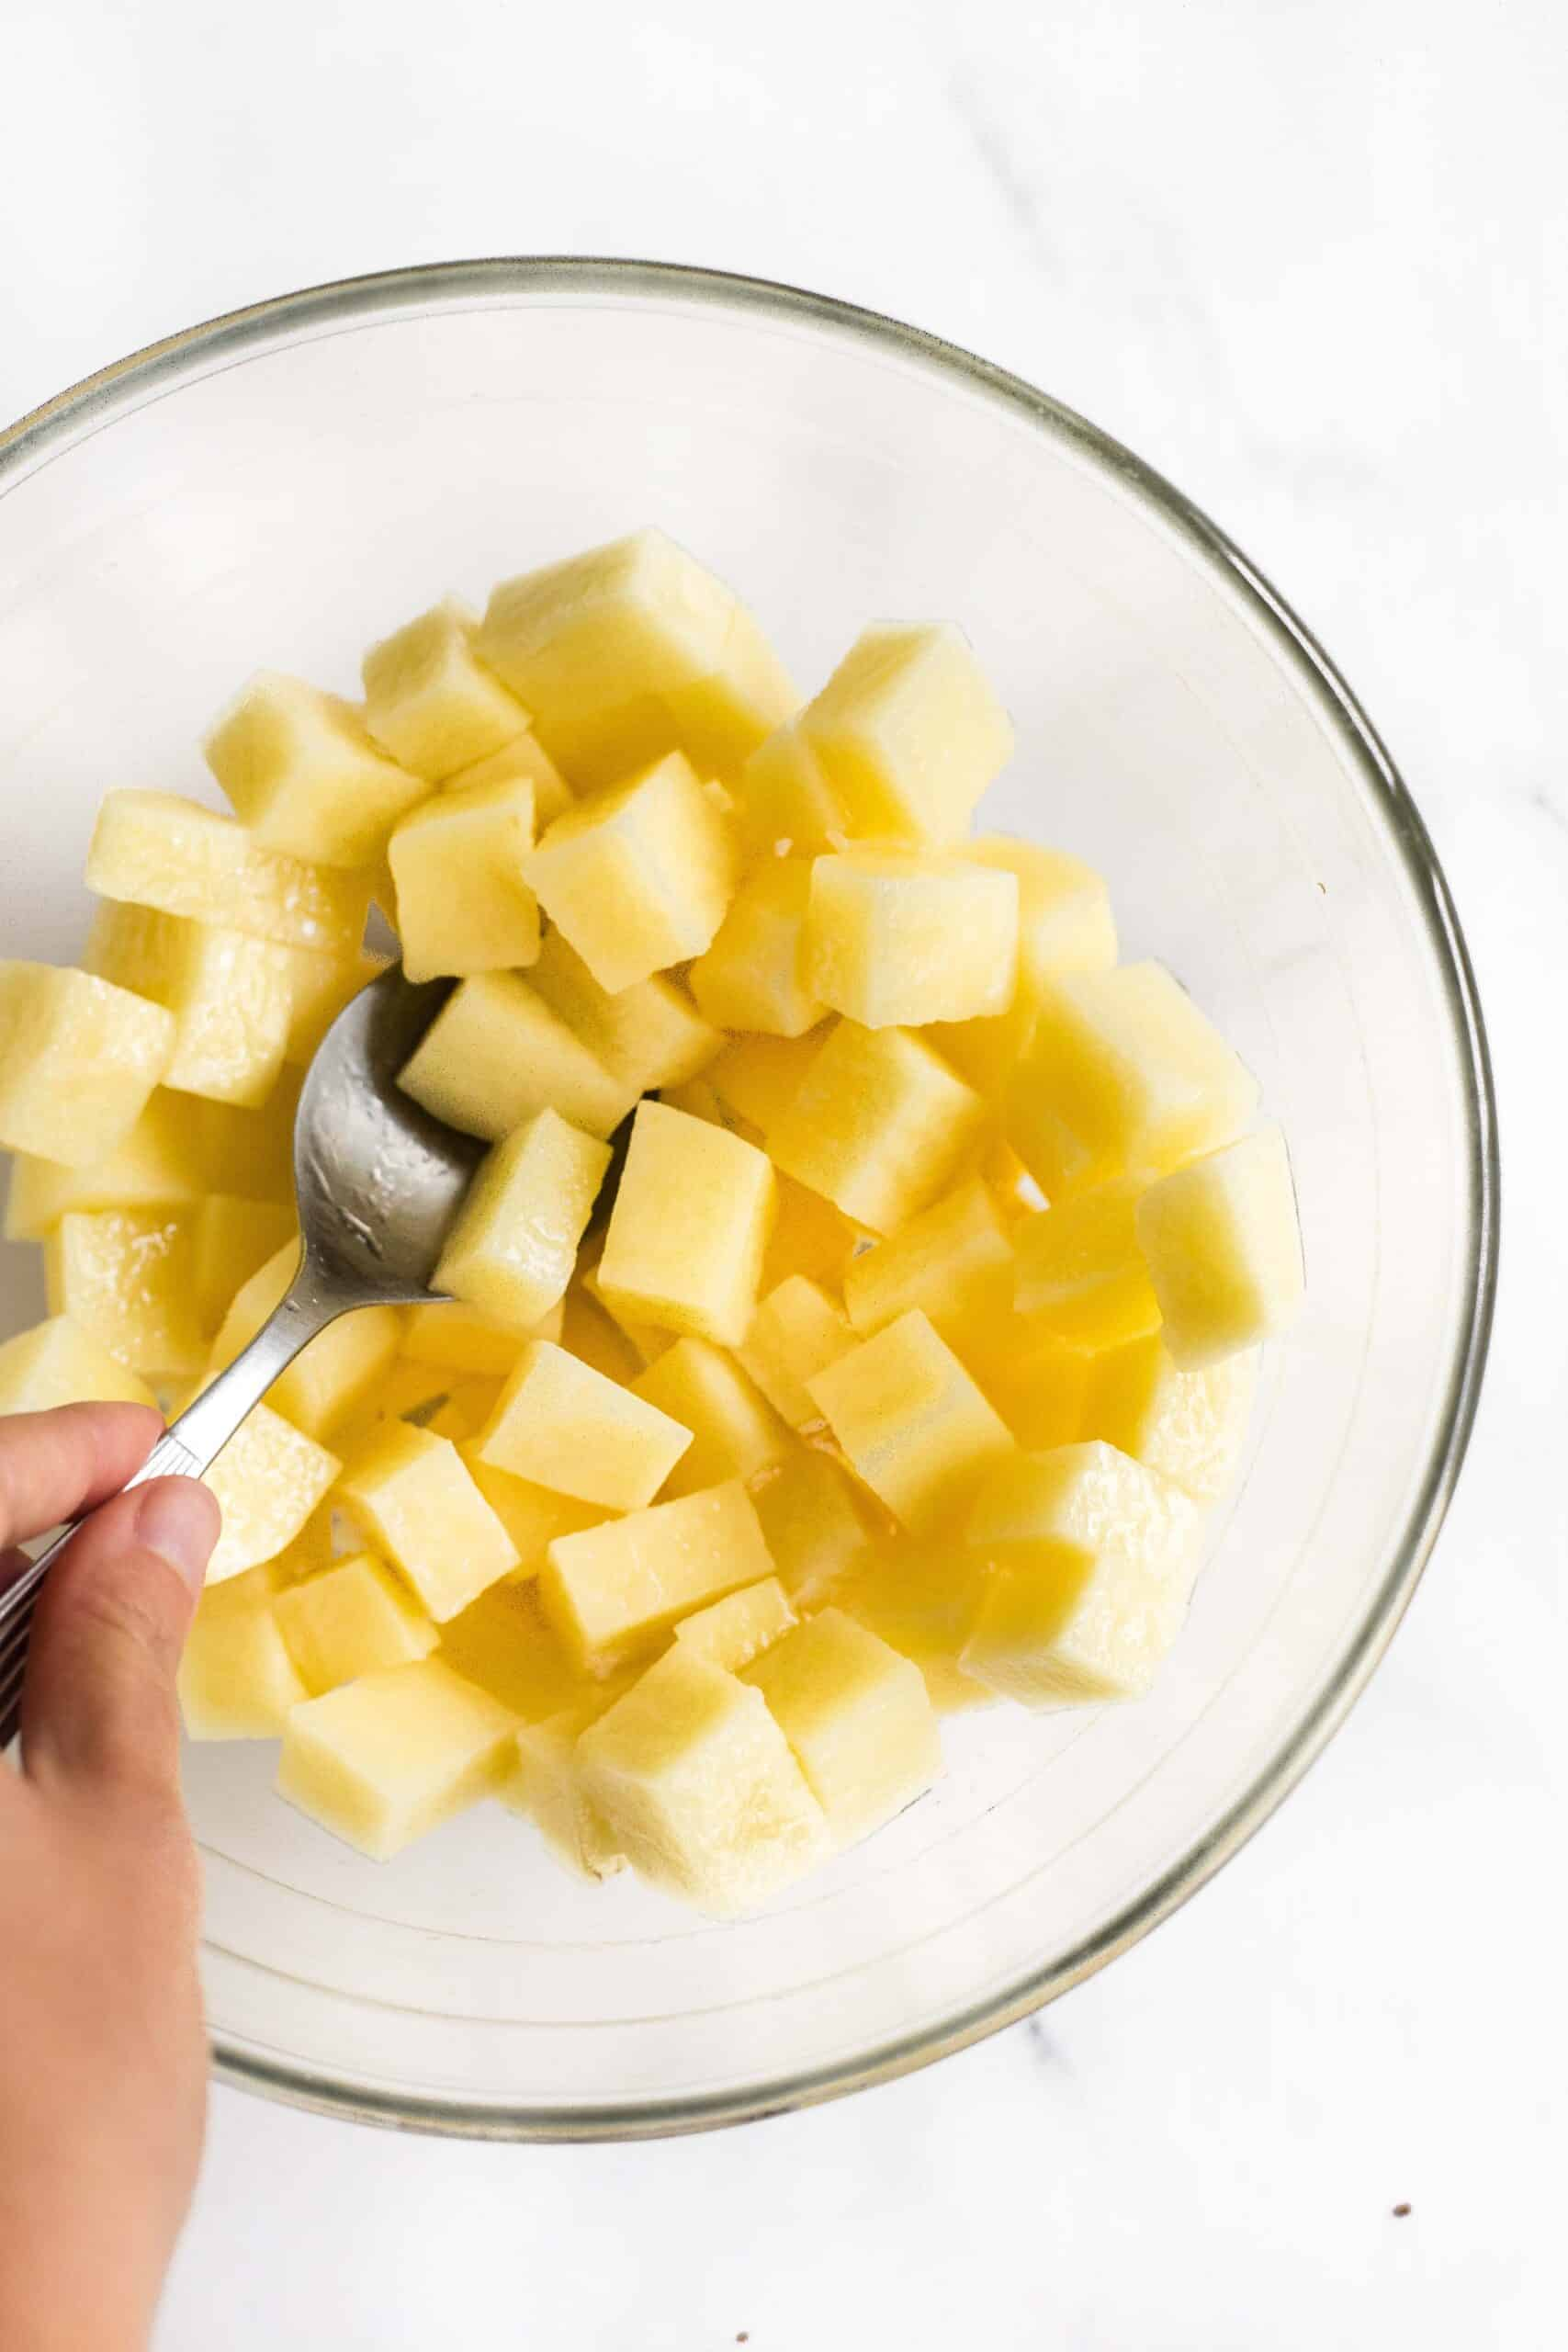 Mixing diced potatoes with oil in a large glass bowl.